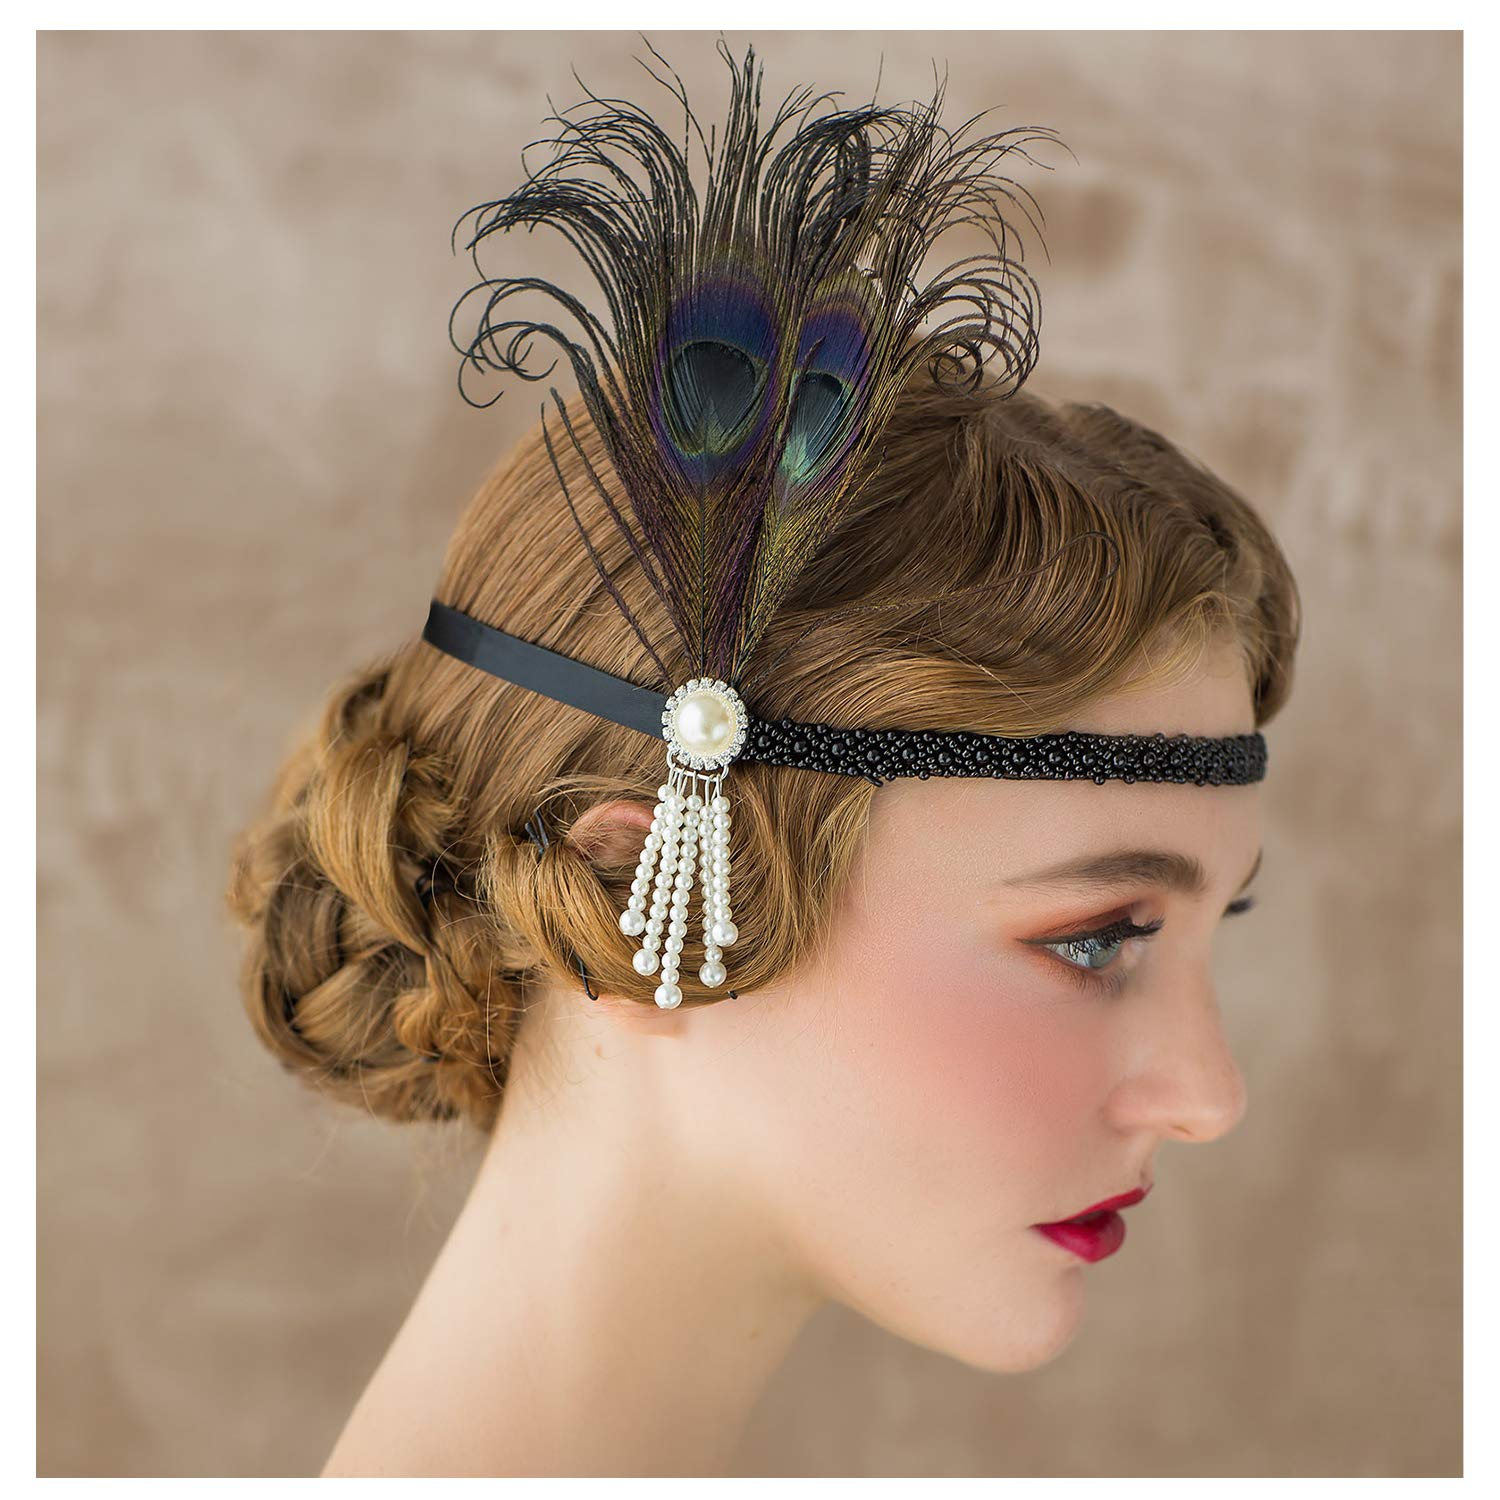 Floral Design, Vintage style Sequin and Pearl Hairband in a 1920s style